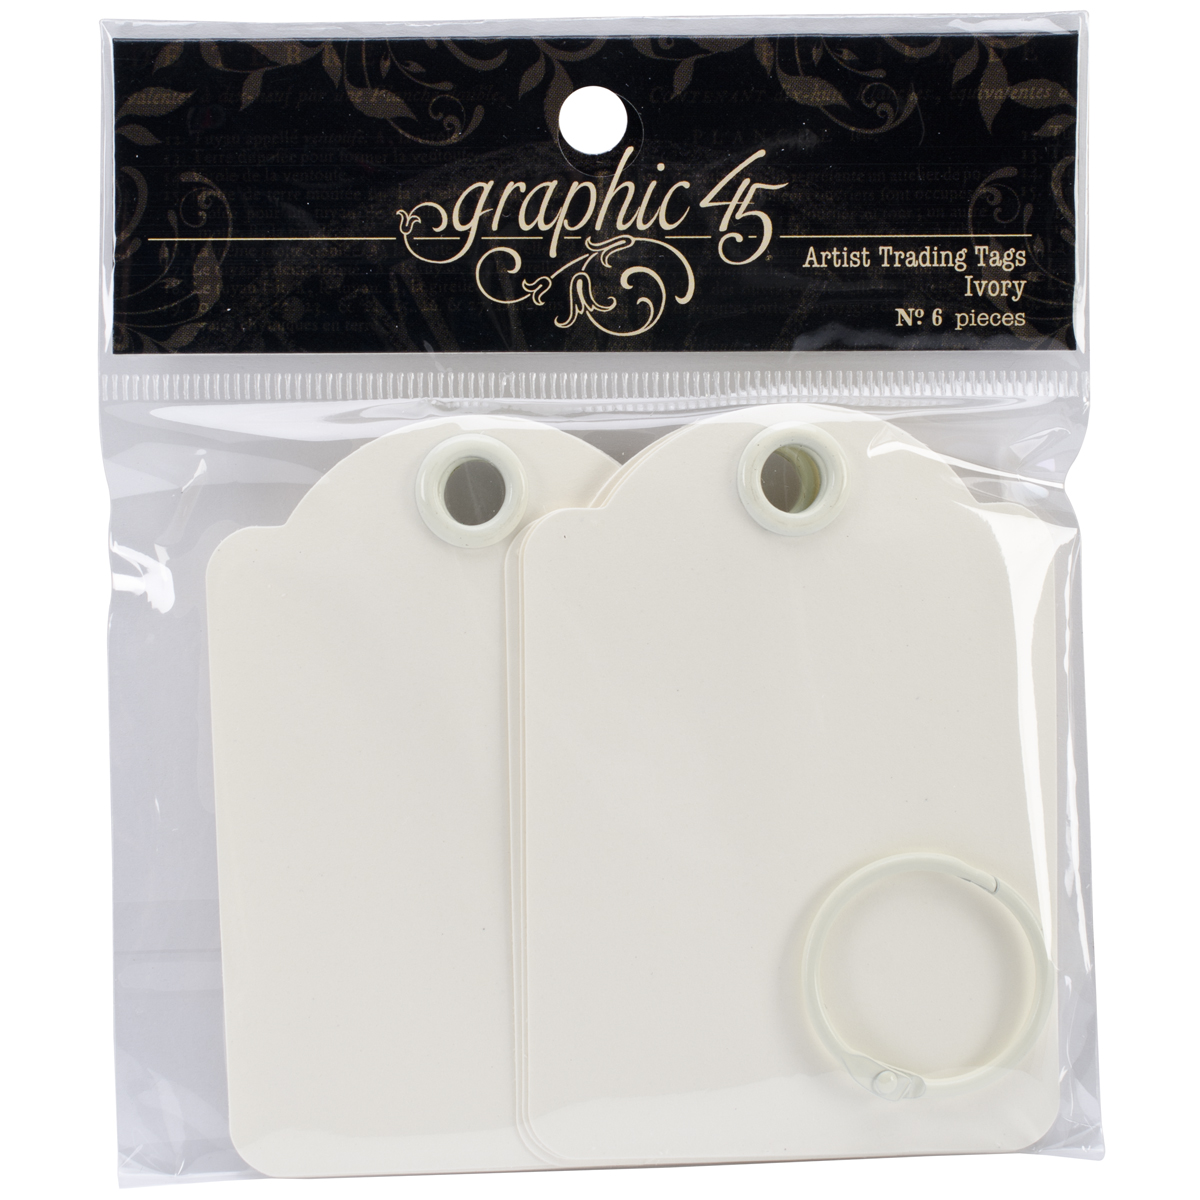 Graphic 45 Staples Artist Trading Tag Album 3.5X2.5-Ivory